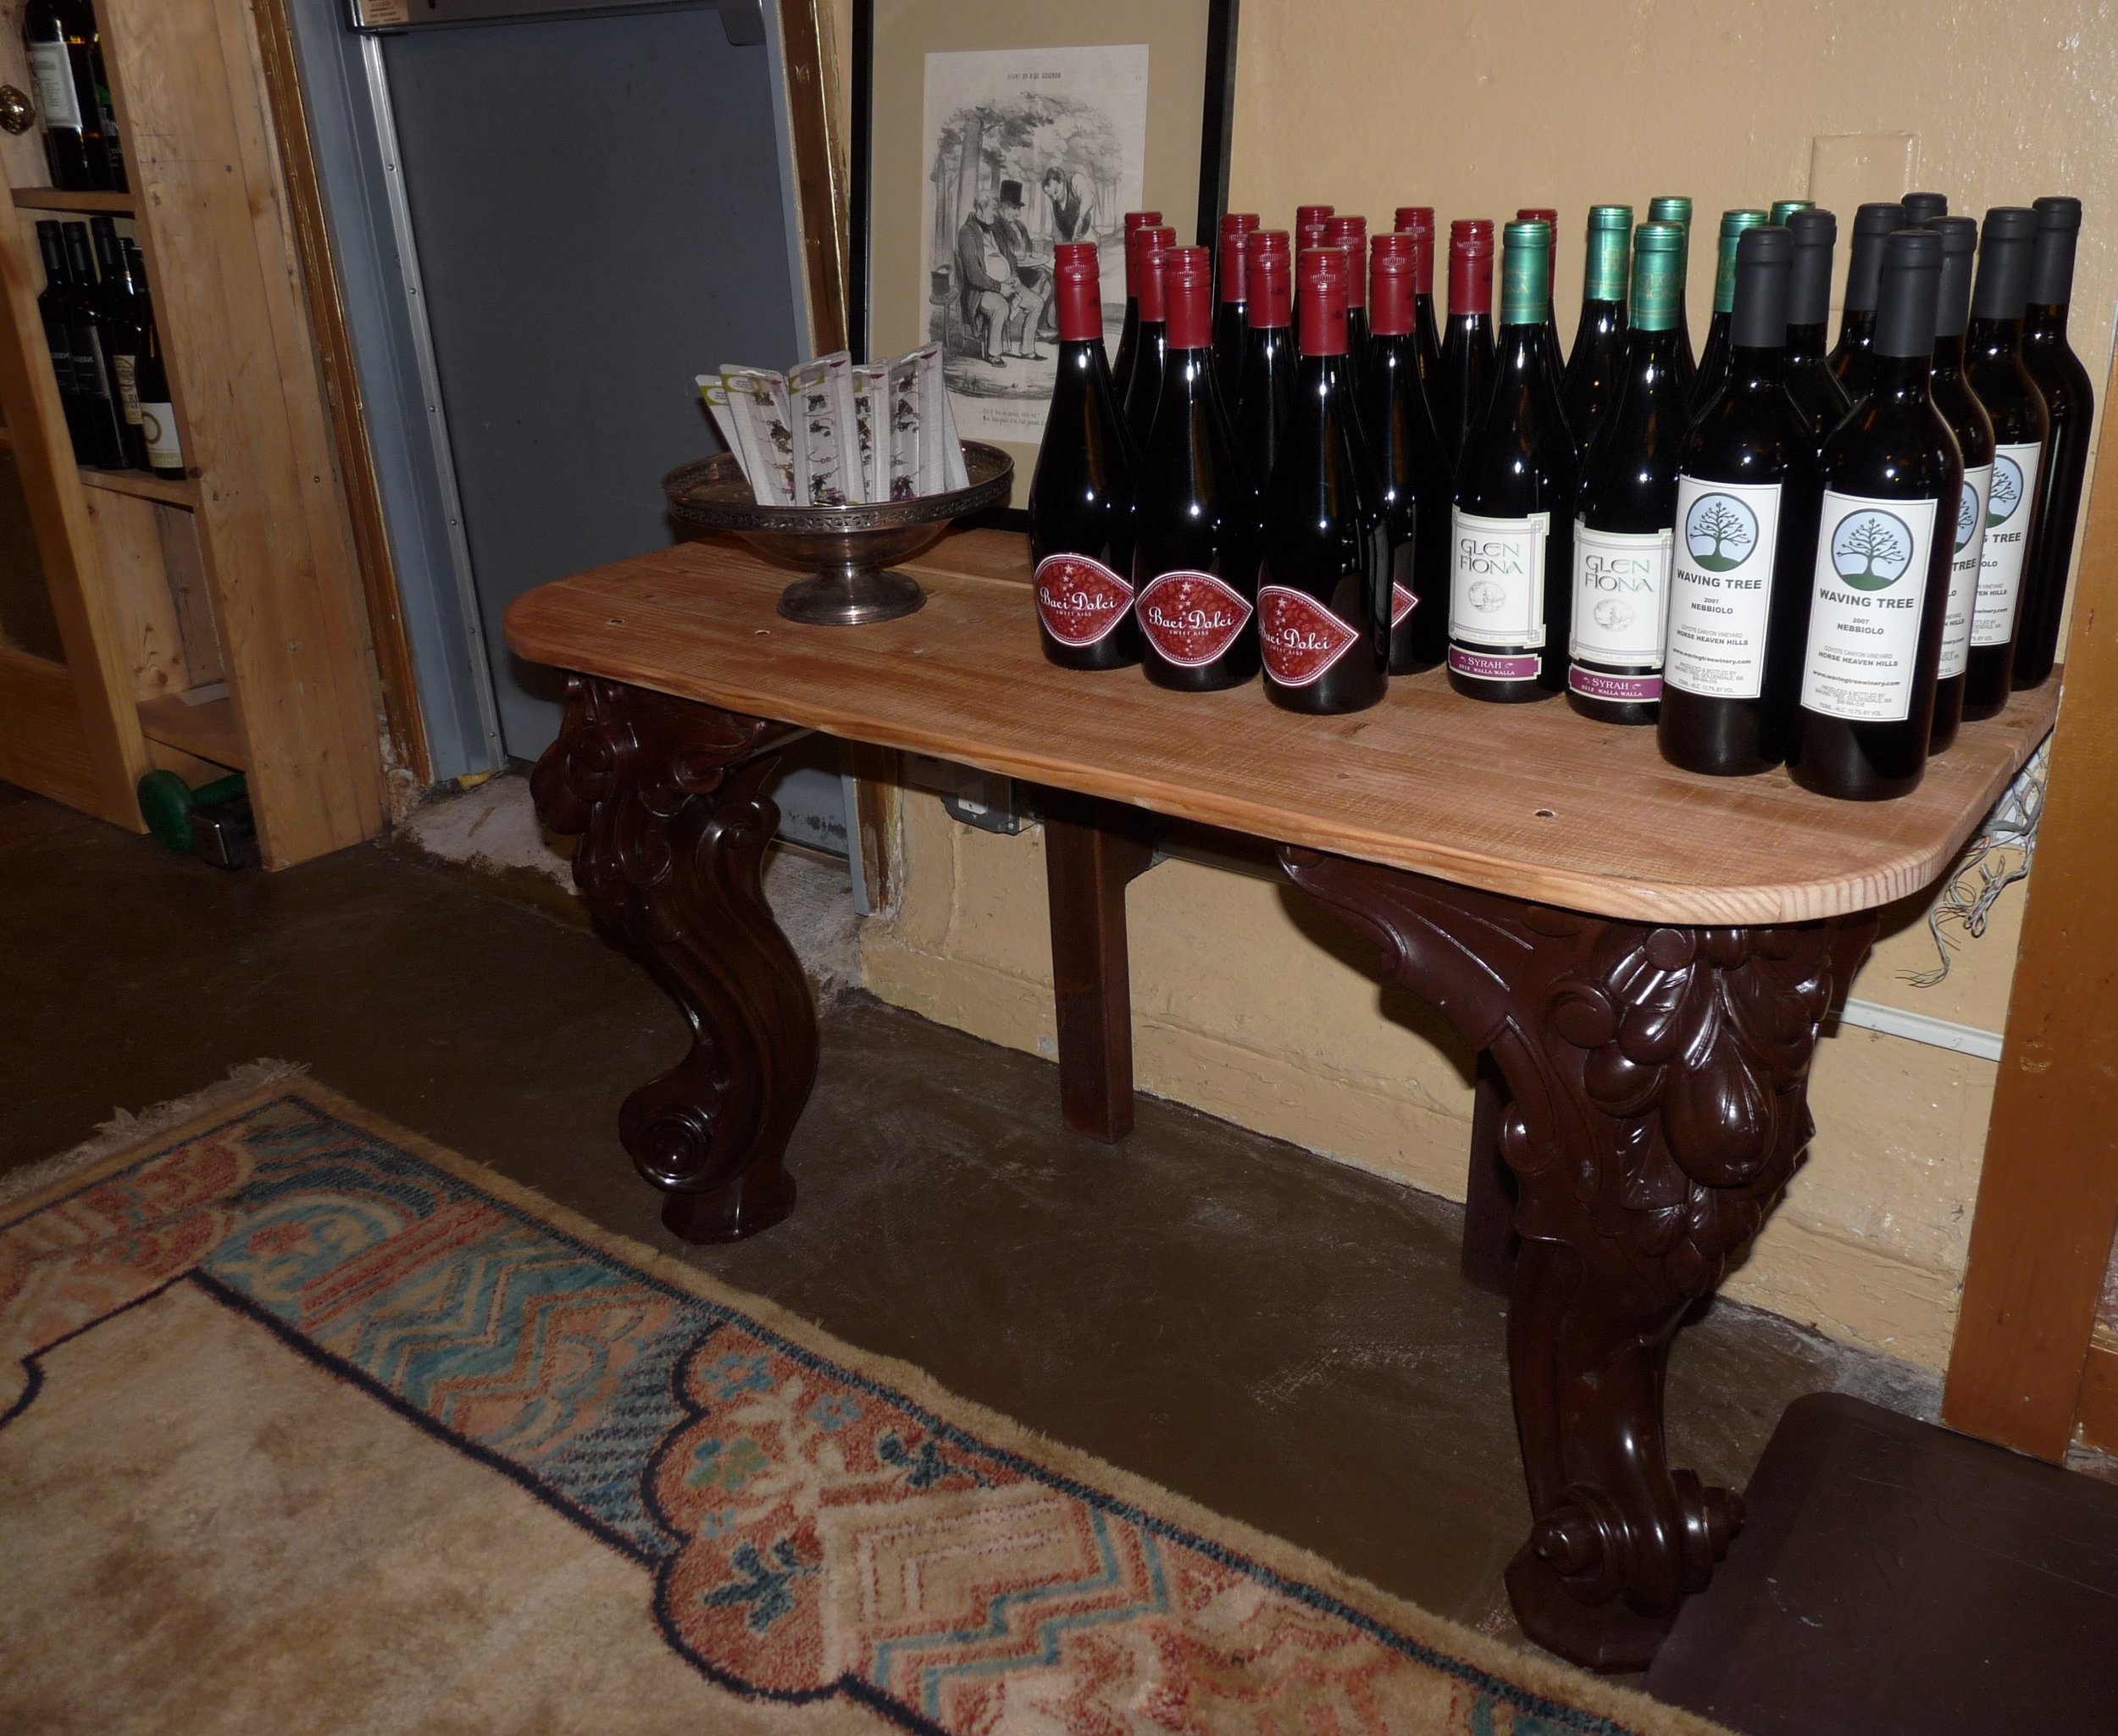 A skilled crafstwoman, Dana Dokken uses wood as her medium and recently up-cycled baroque-style piano legs into an accent table for Evergreen Wine Cellar